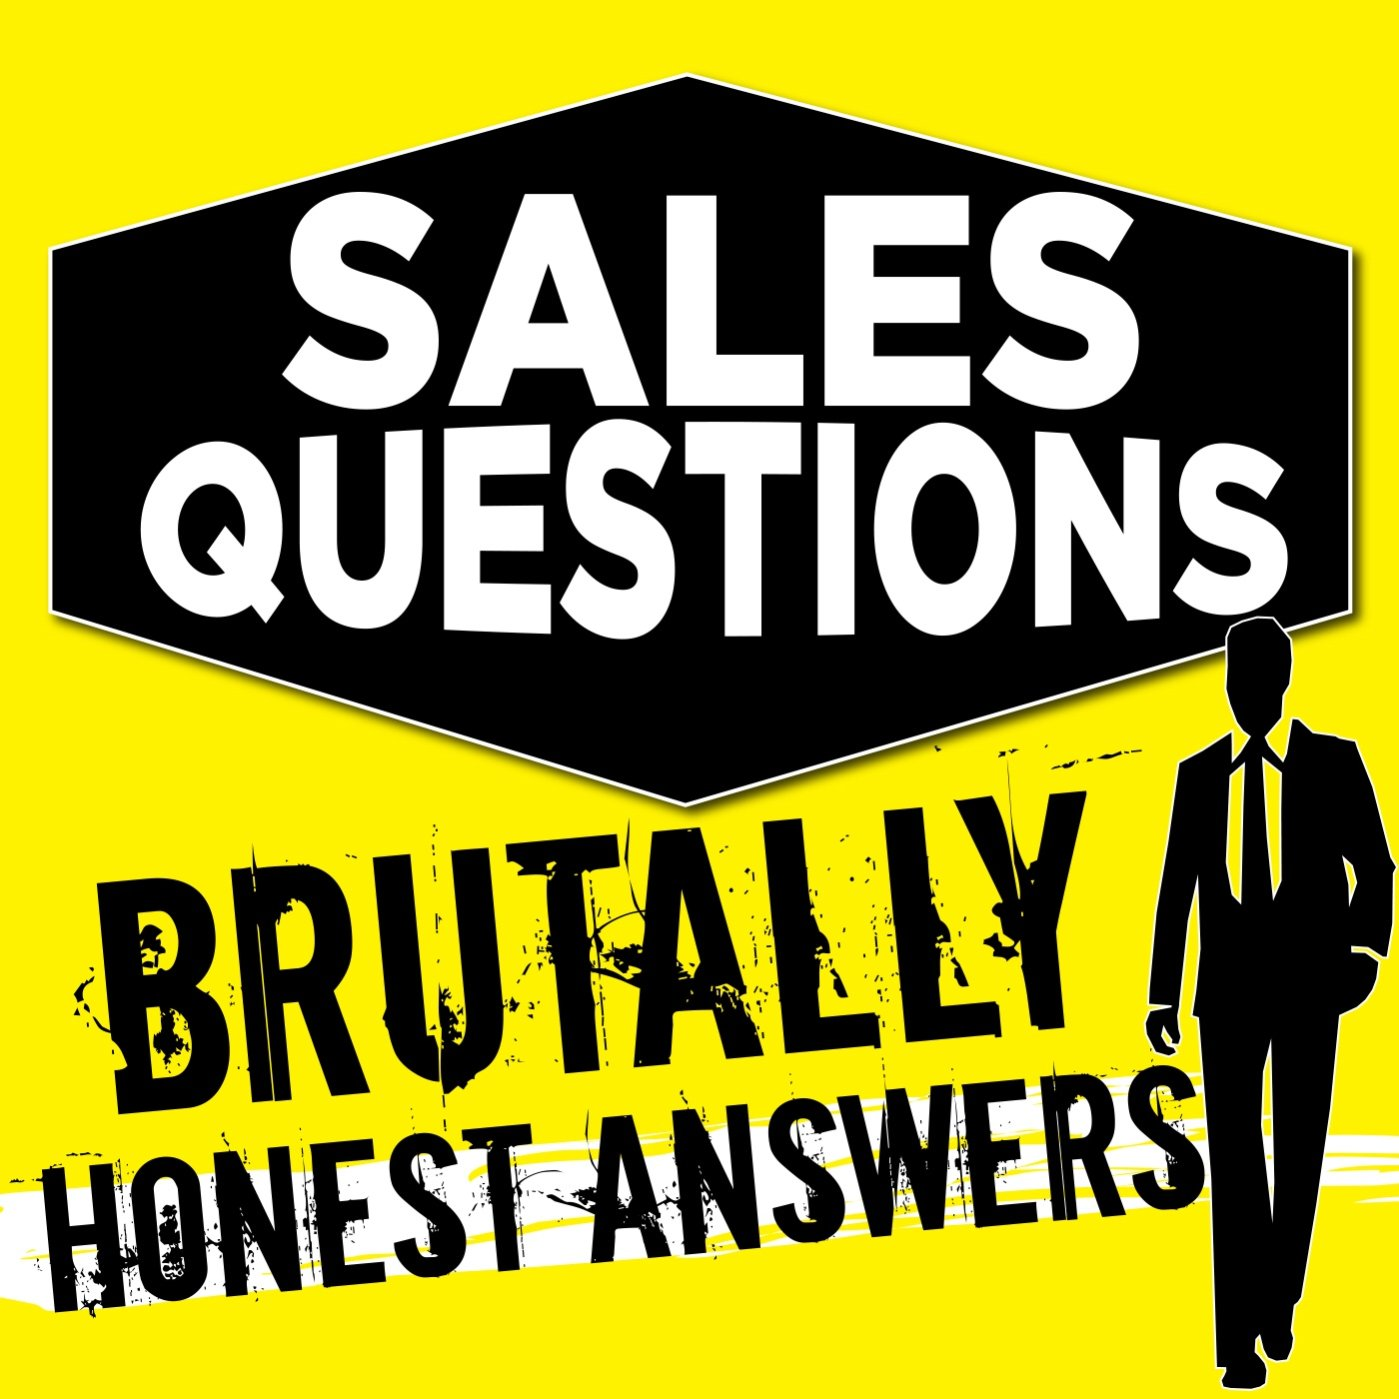 Home Business Ideas Yahoo Answers: Podcast: Sales Questions And Brutally Honest